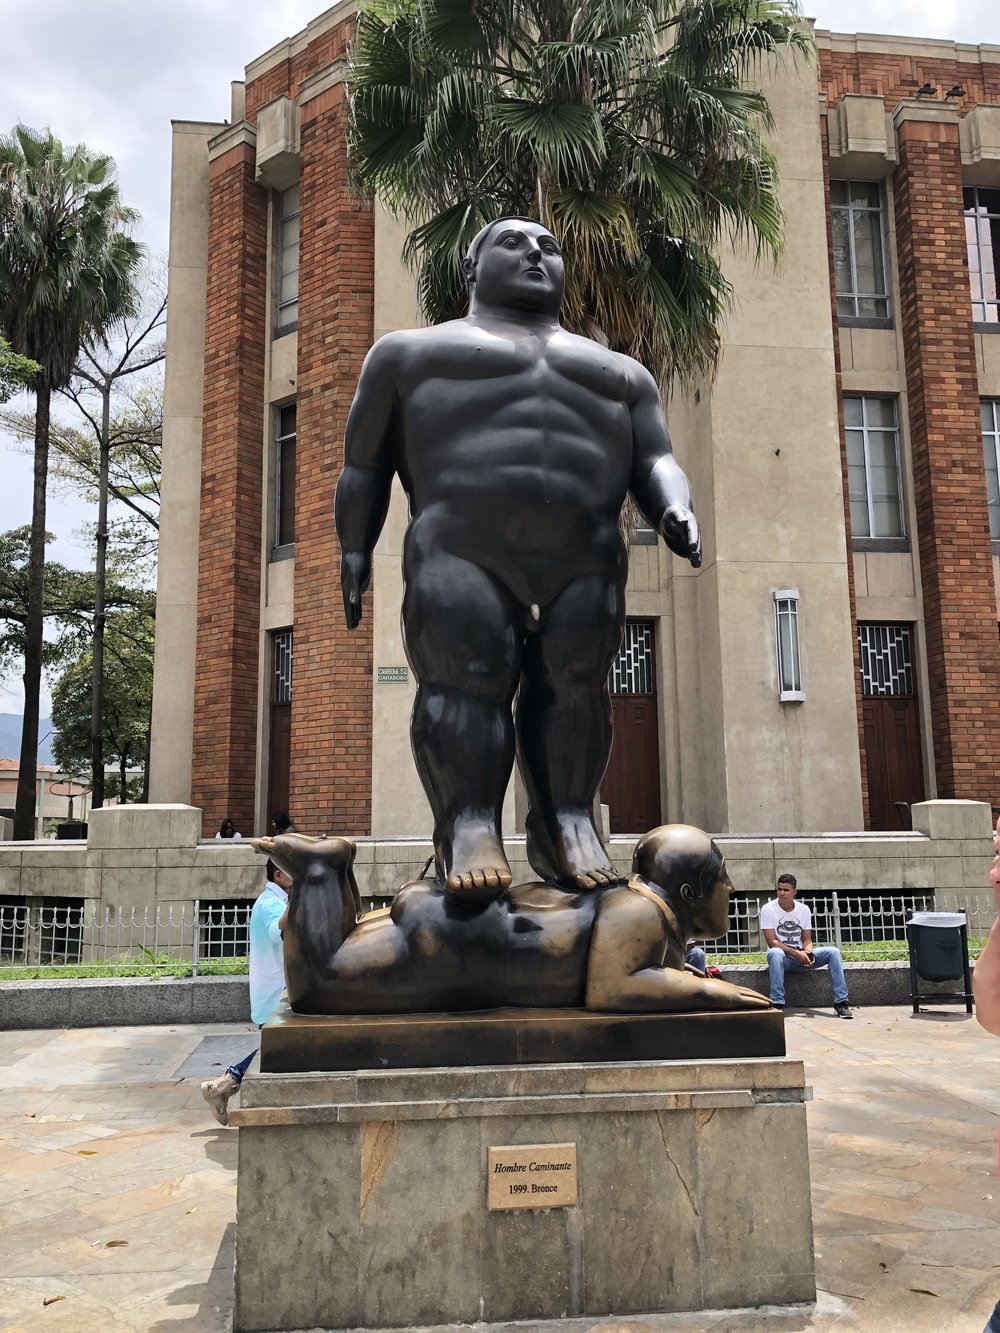 We visited Botero Square where we were able to see more of our favorite chubby art.